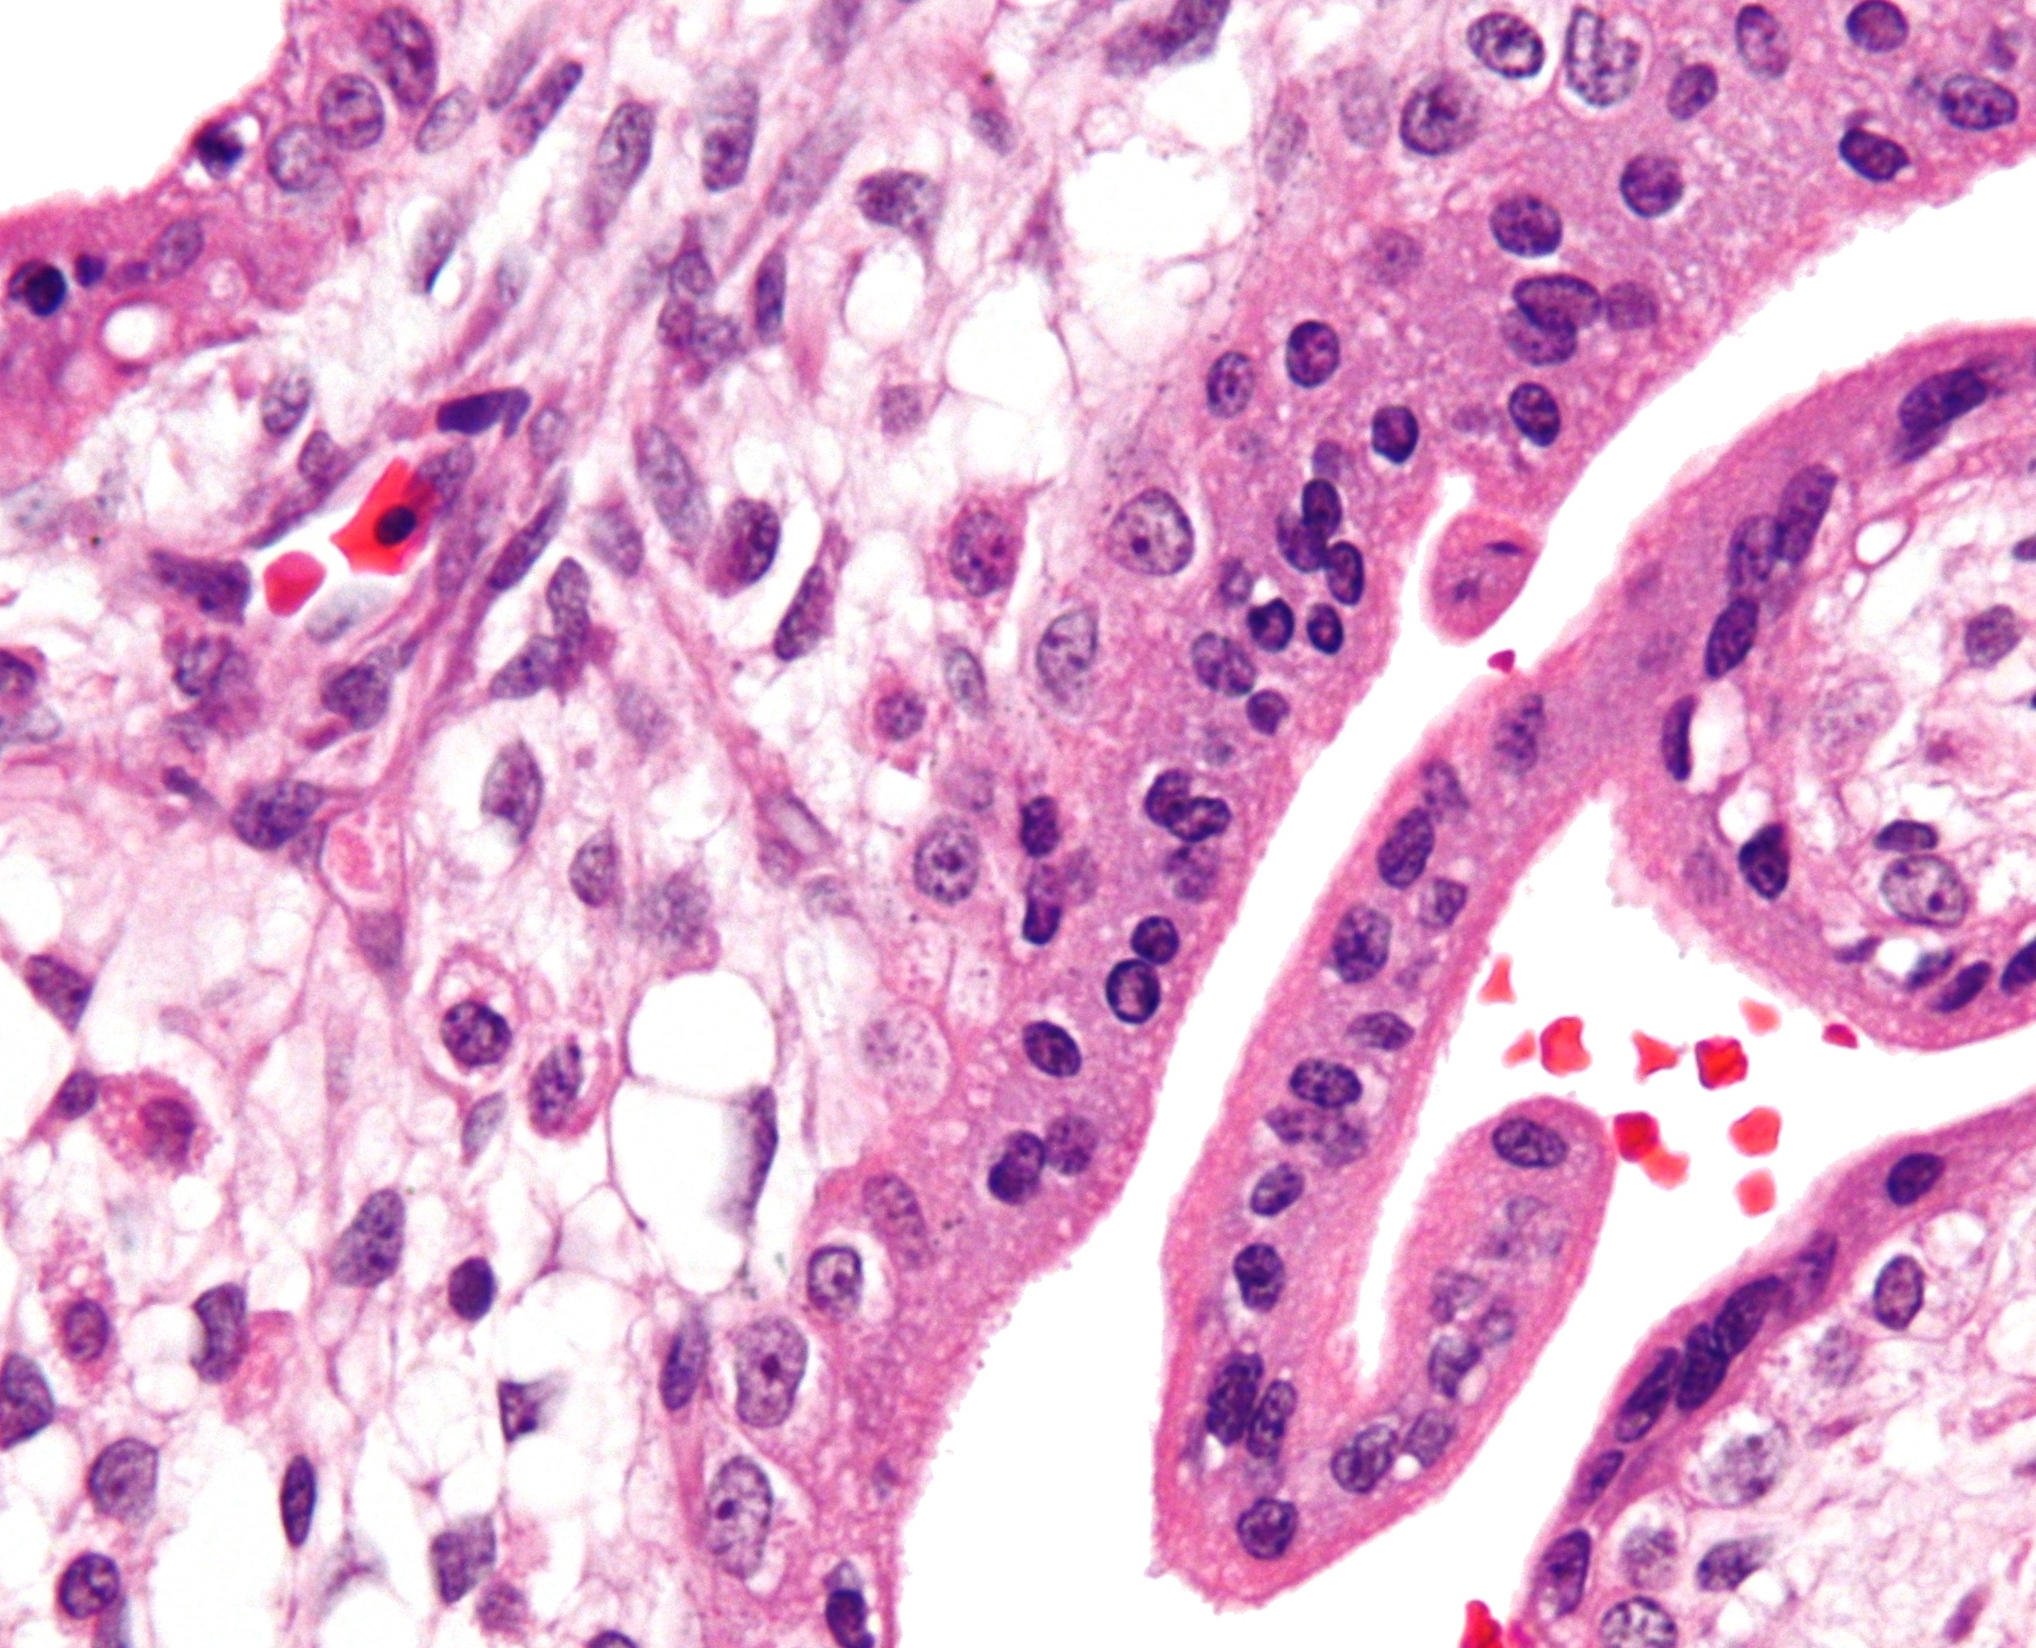 Micrograph showing chorionic villi of placenta with Hofbauer cells